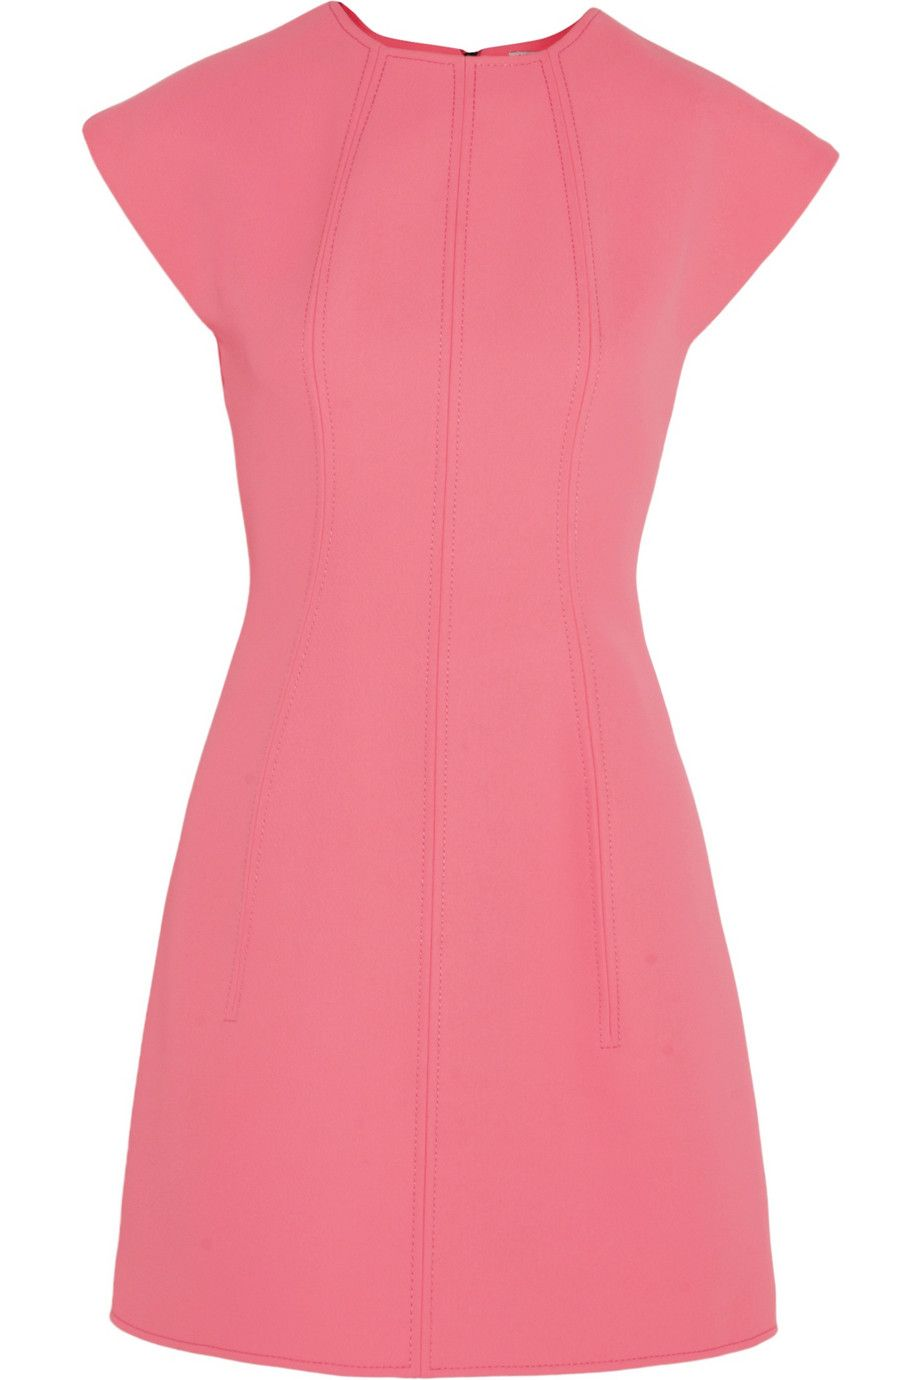 KENZO | Neon neoprene mini dress | NET-A-PORTER.COM